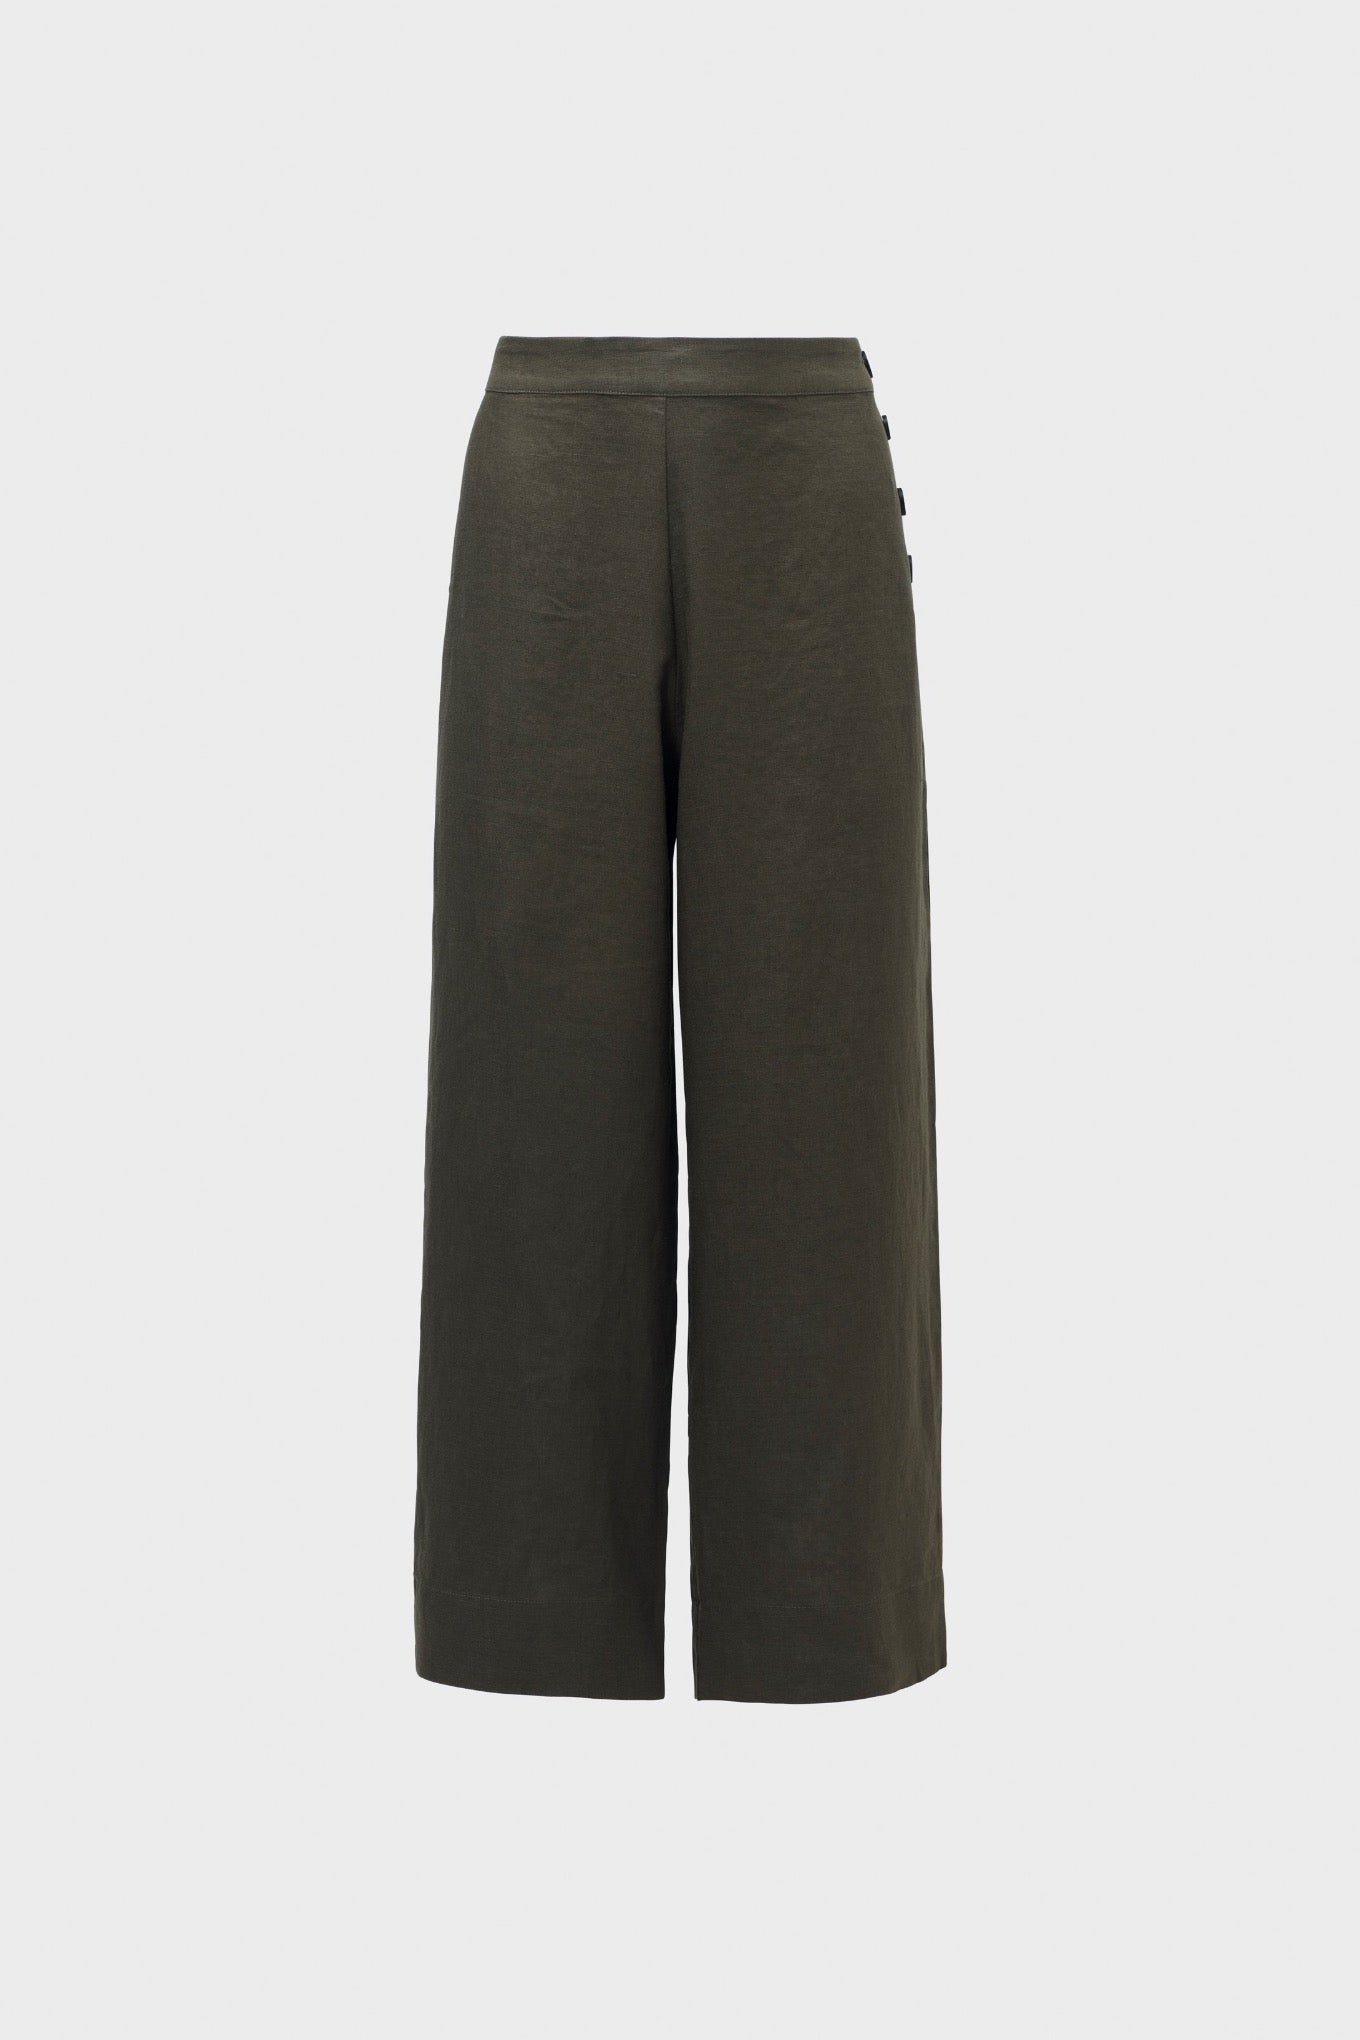 Elk Halvi linen pants in olive.